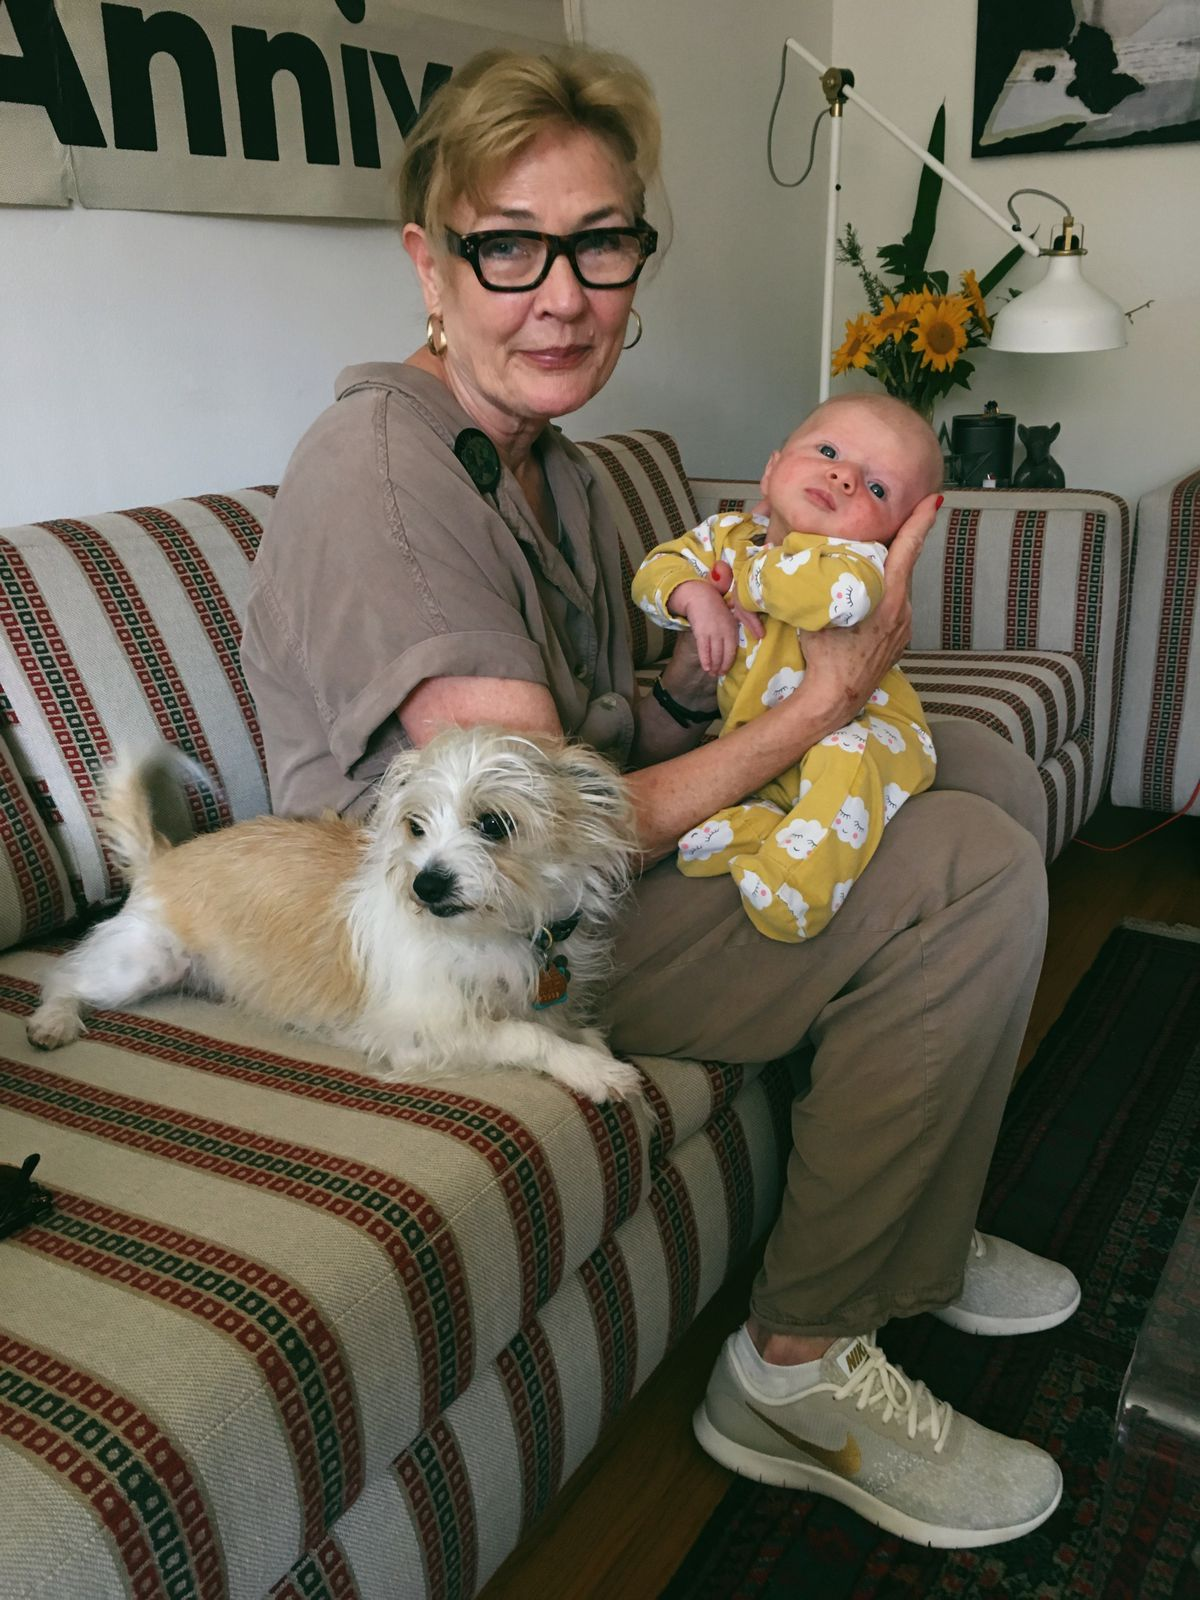 A woman in glasses holds a baby while sitting on a couch. A small white dog is sitting next to her.